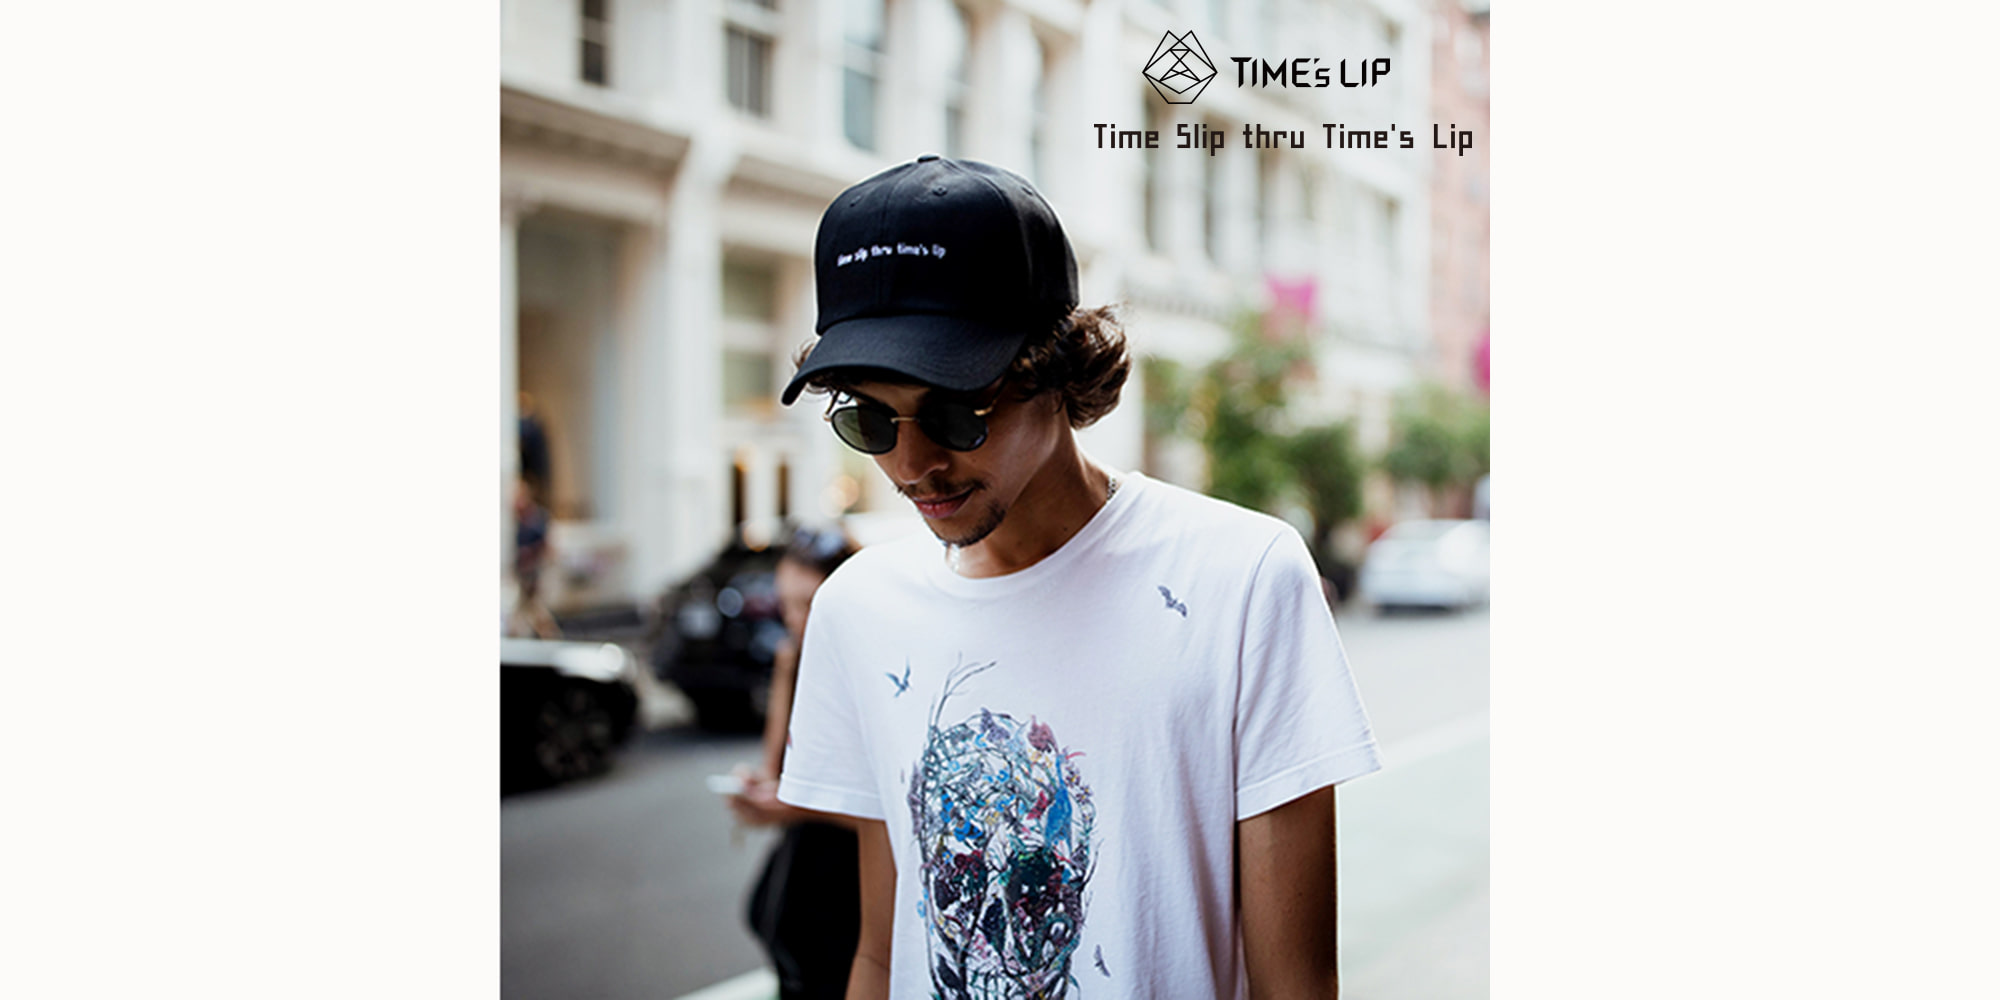 VOL 3. TIME'S LIP IN NEW YORK